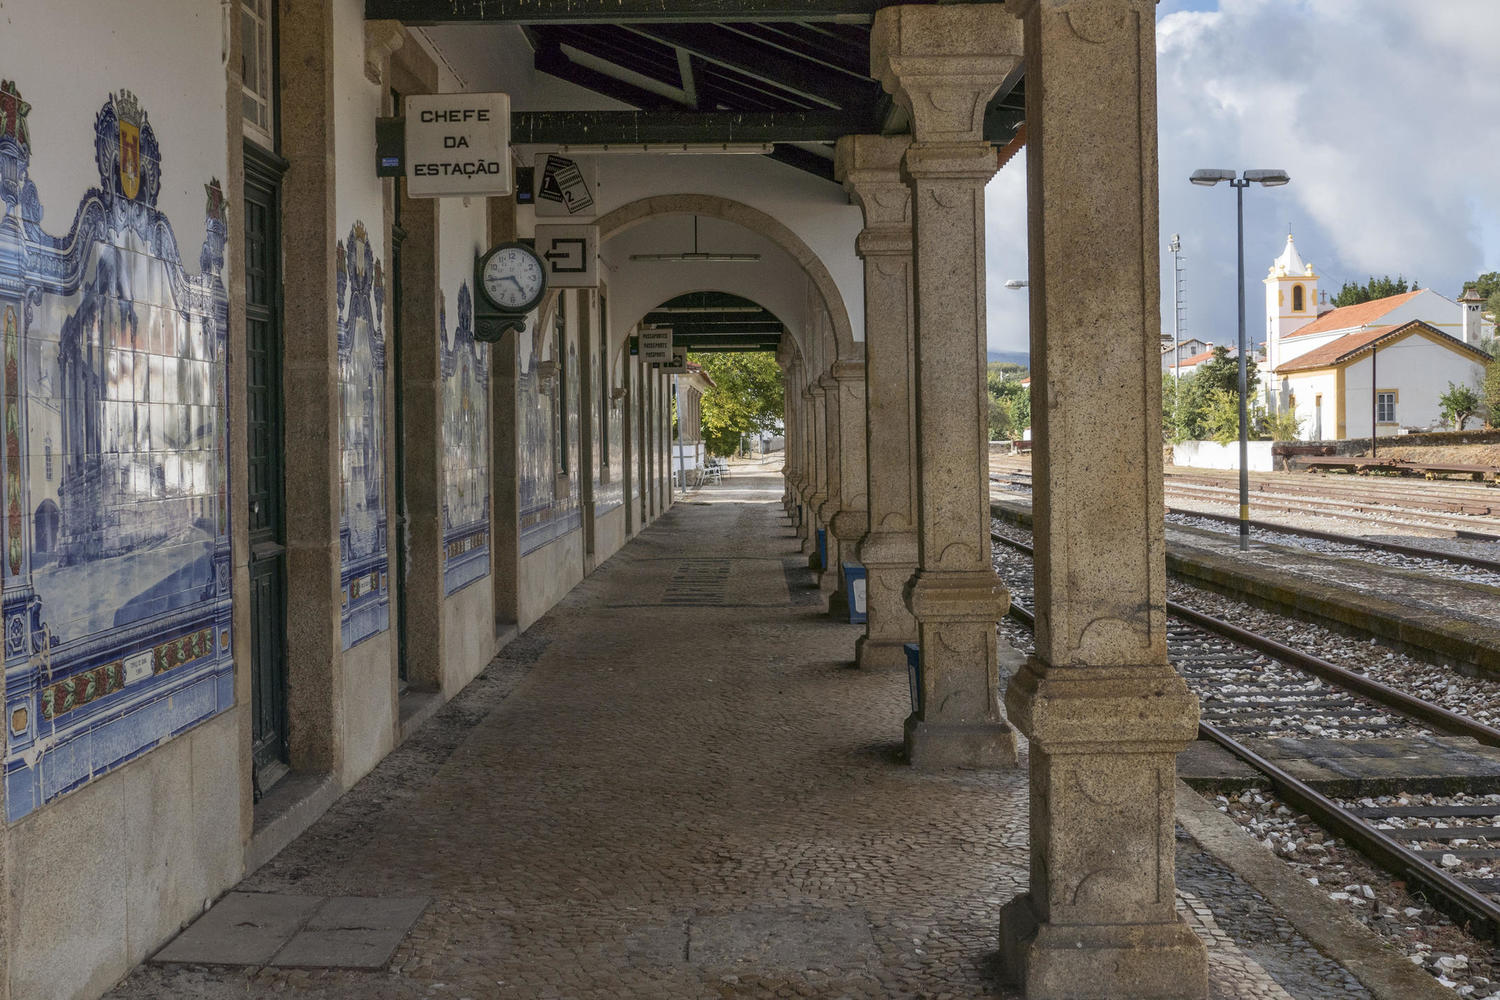 The train station of Beira